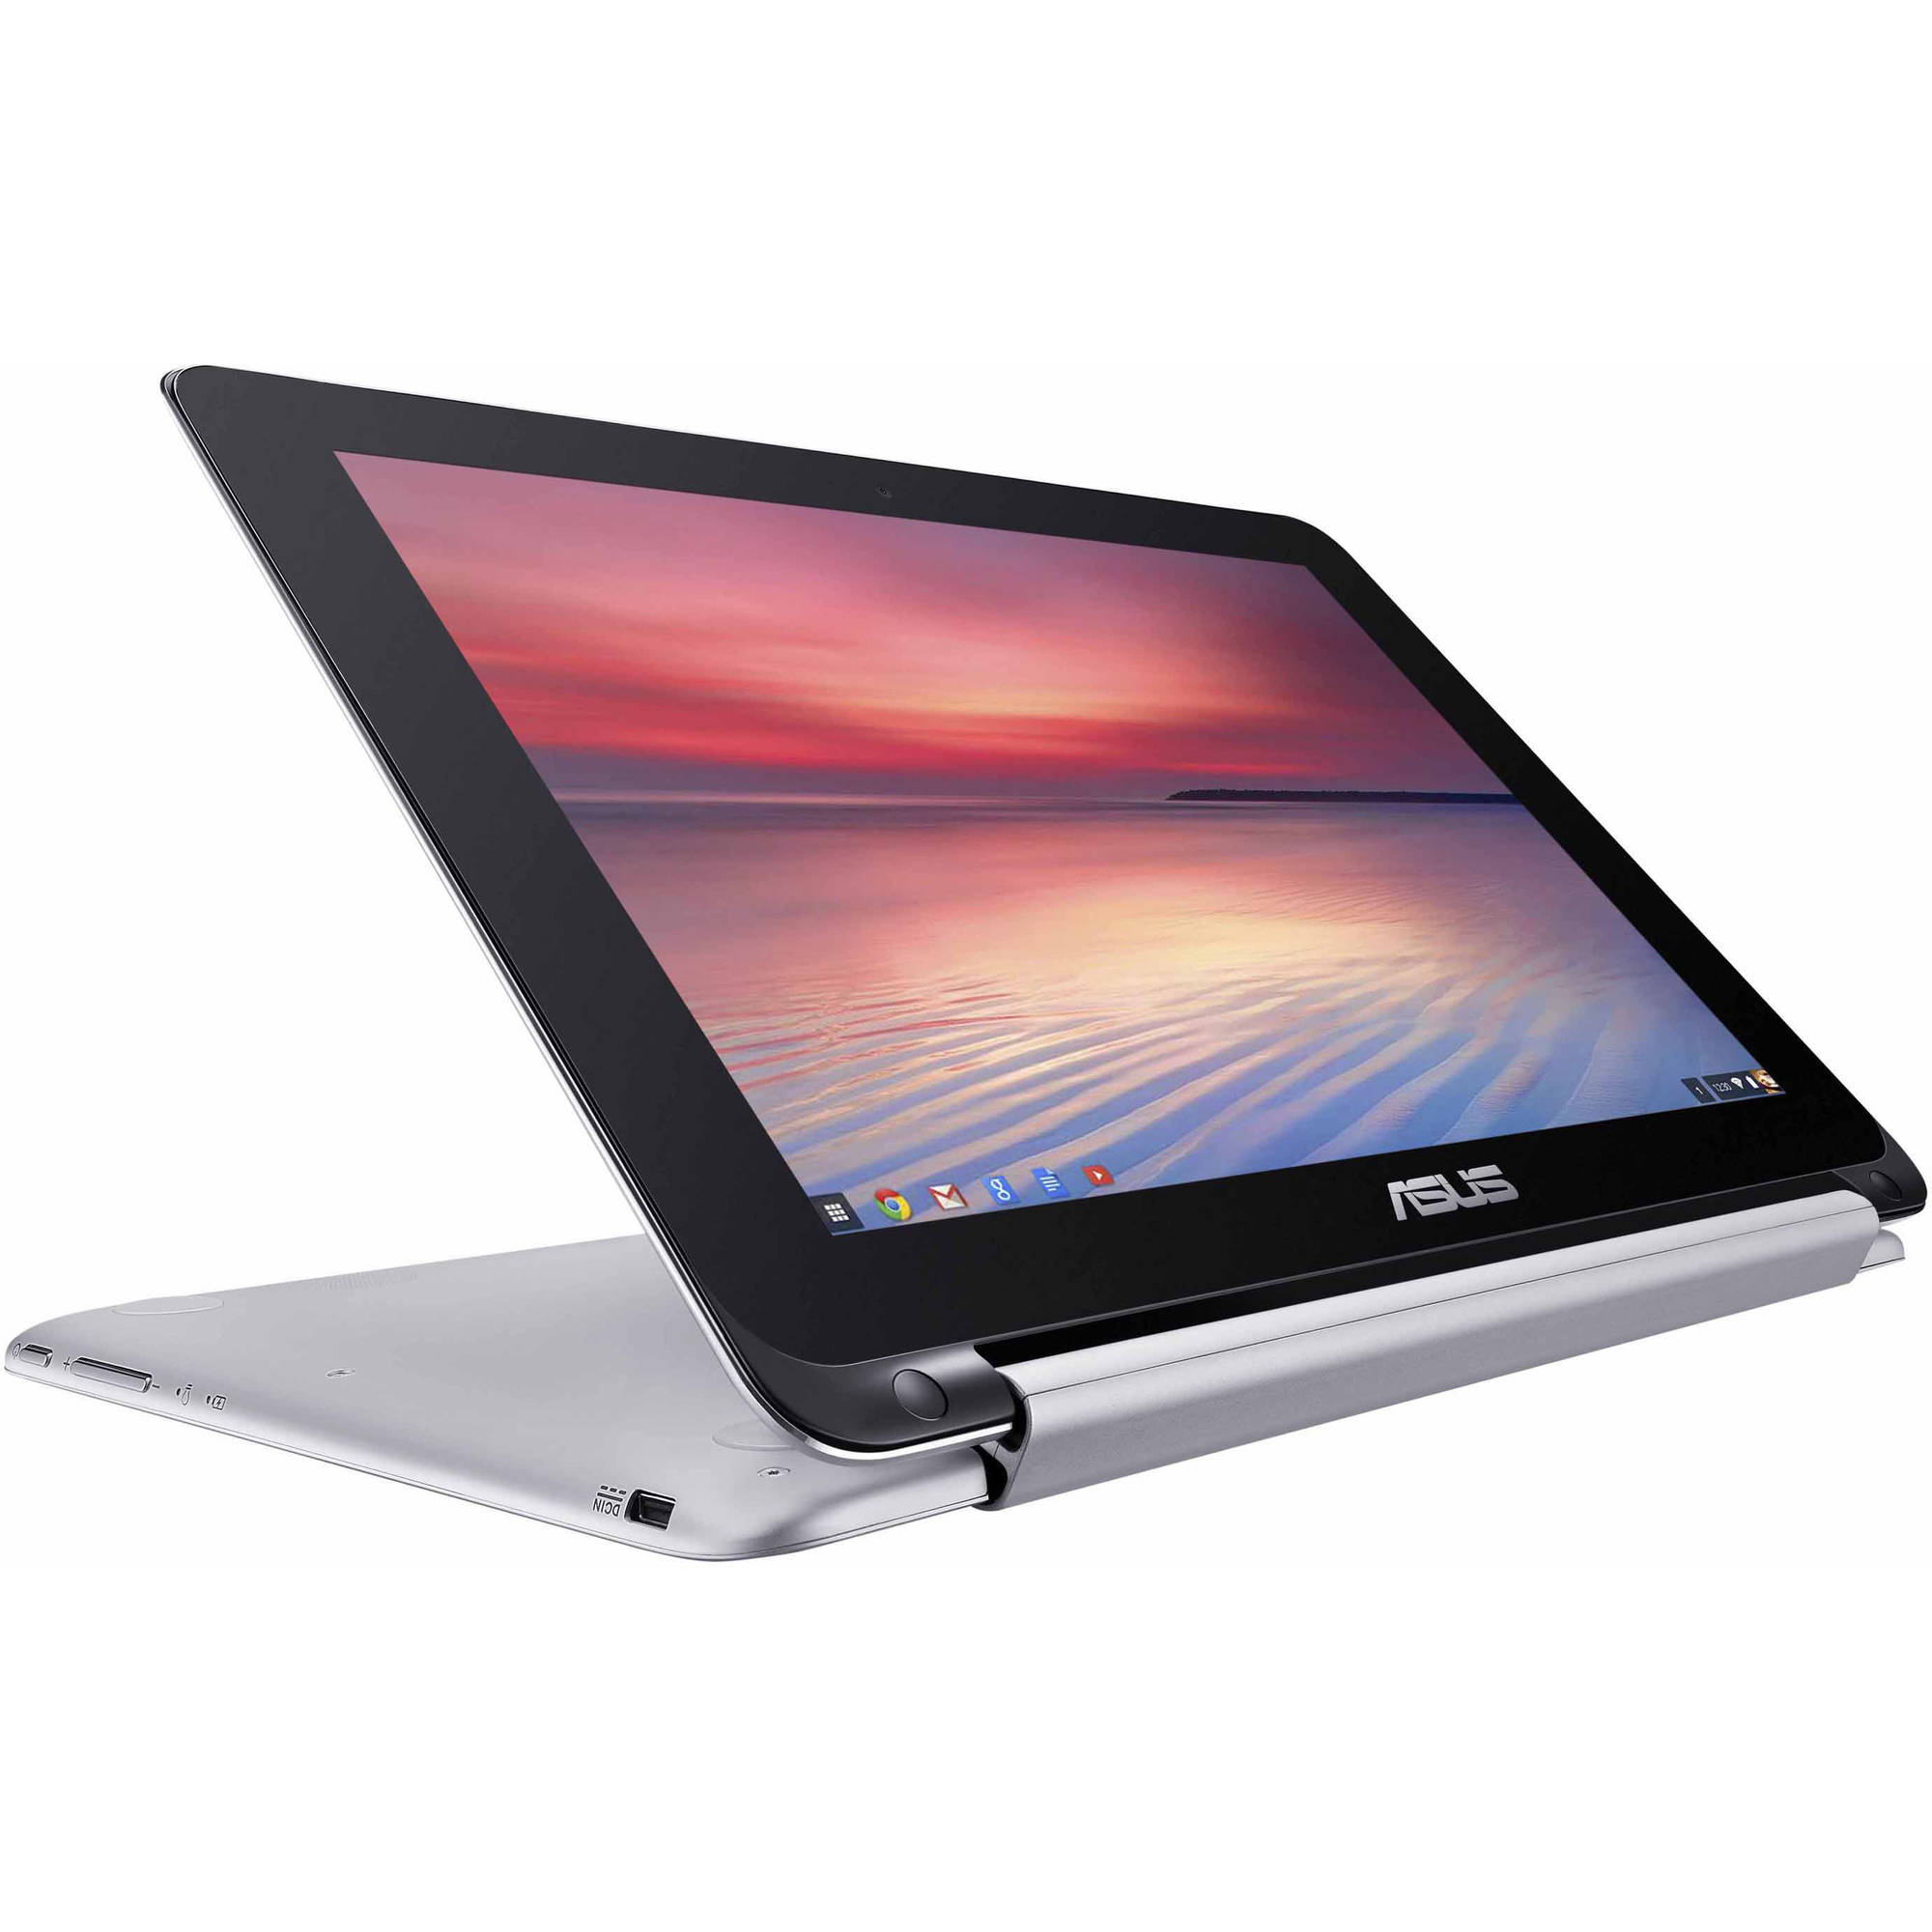 "ASUS Silver 10.1"" Flip Chromebook PC with Rockchip 3288-C Quad-Core Processor, 4GB Memory, touch screen, 16GB SSD and Chrome OS"